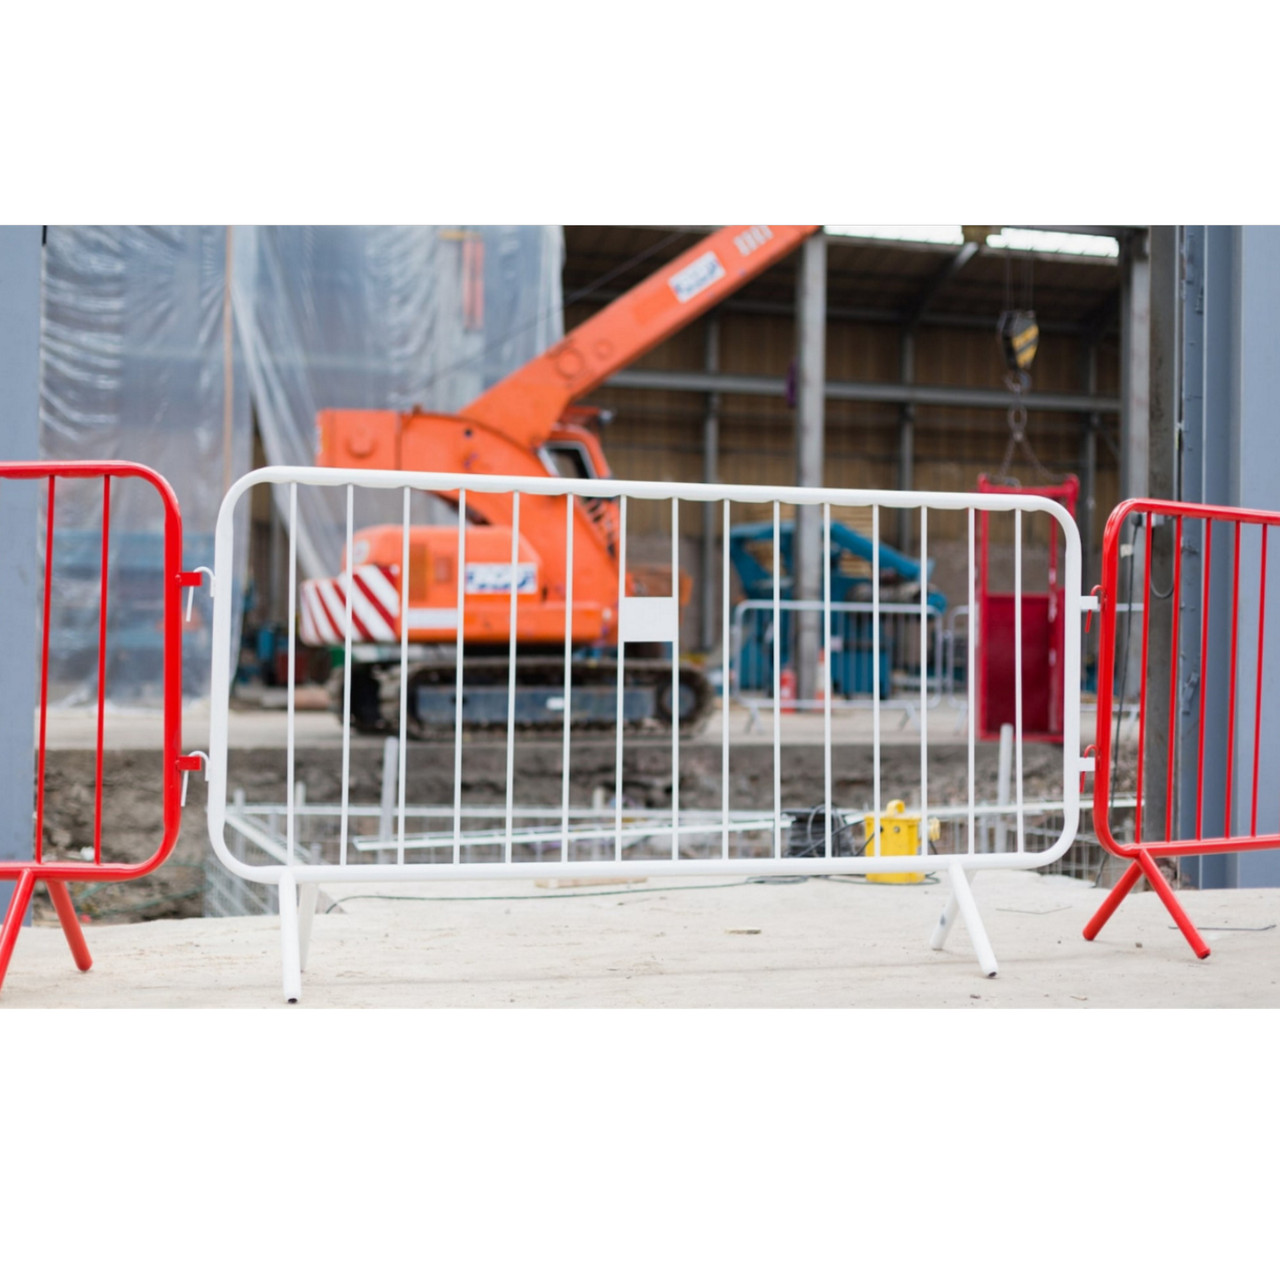 Red & white metal crowd control barriers